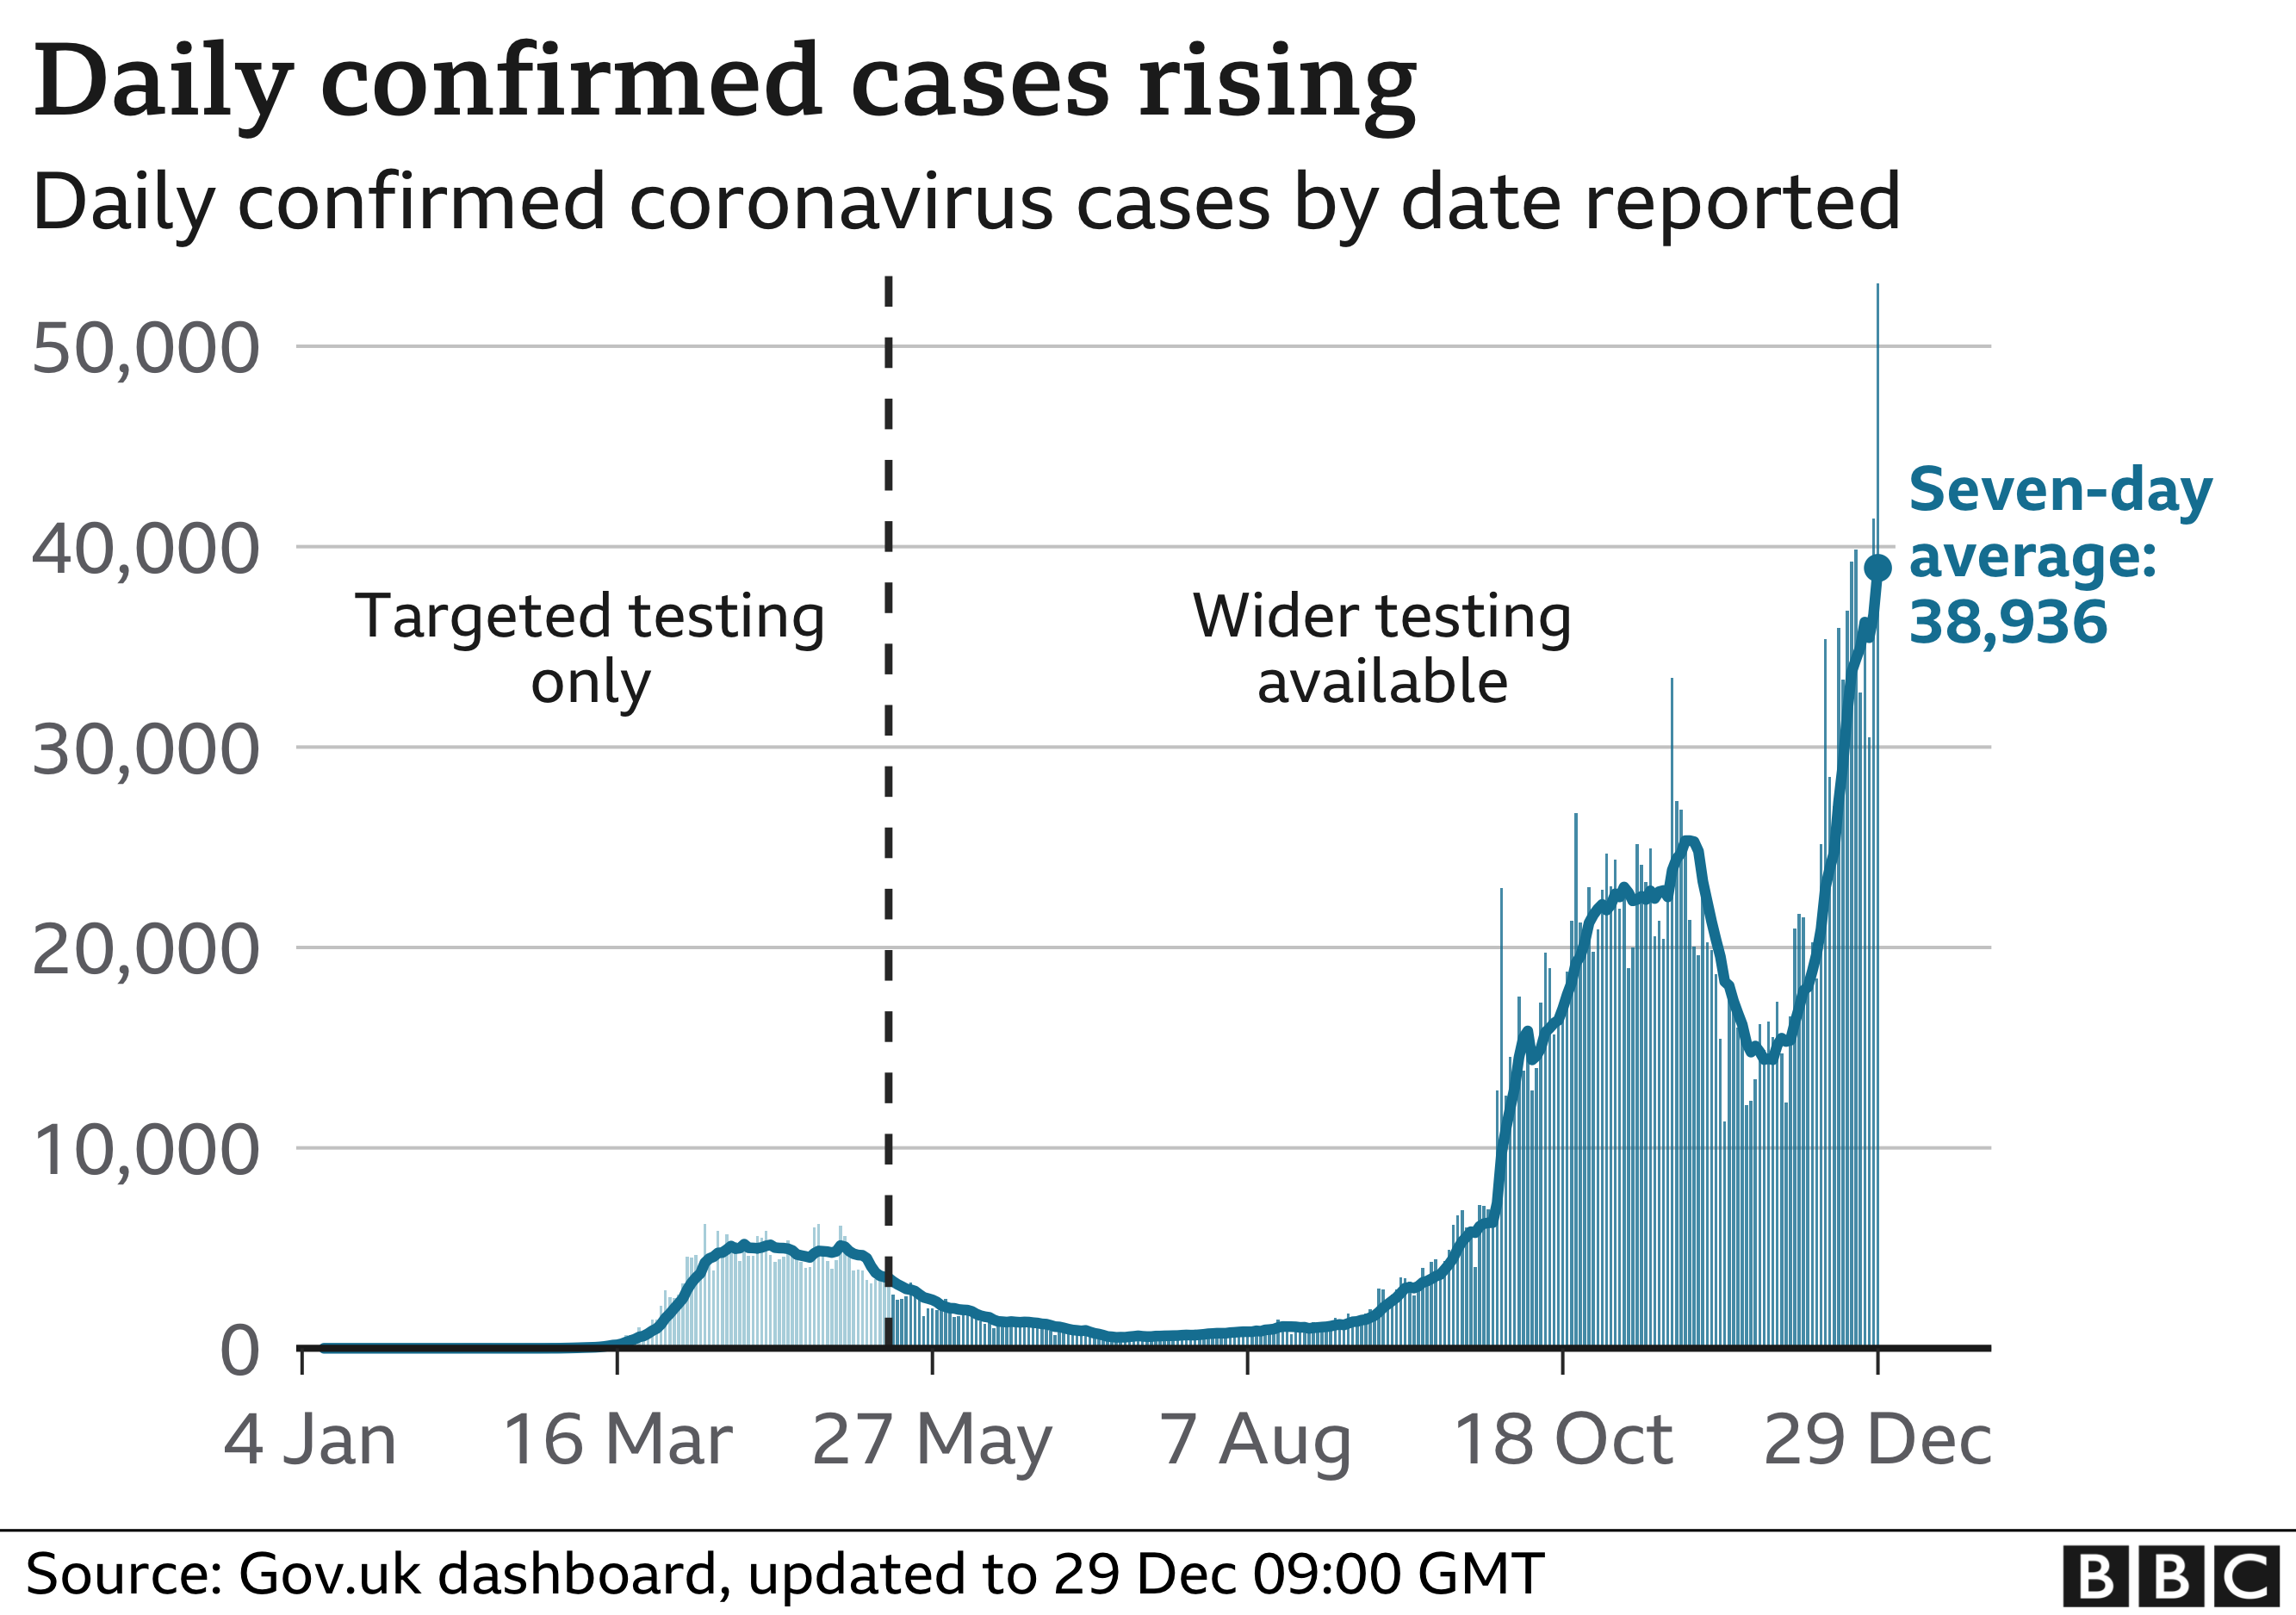 Graph showing daily cases rising in the UK